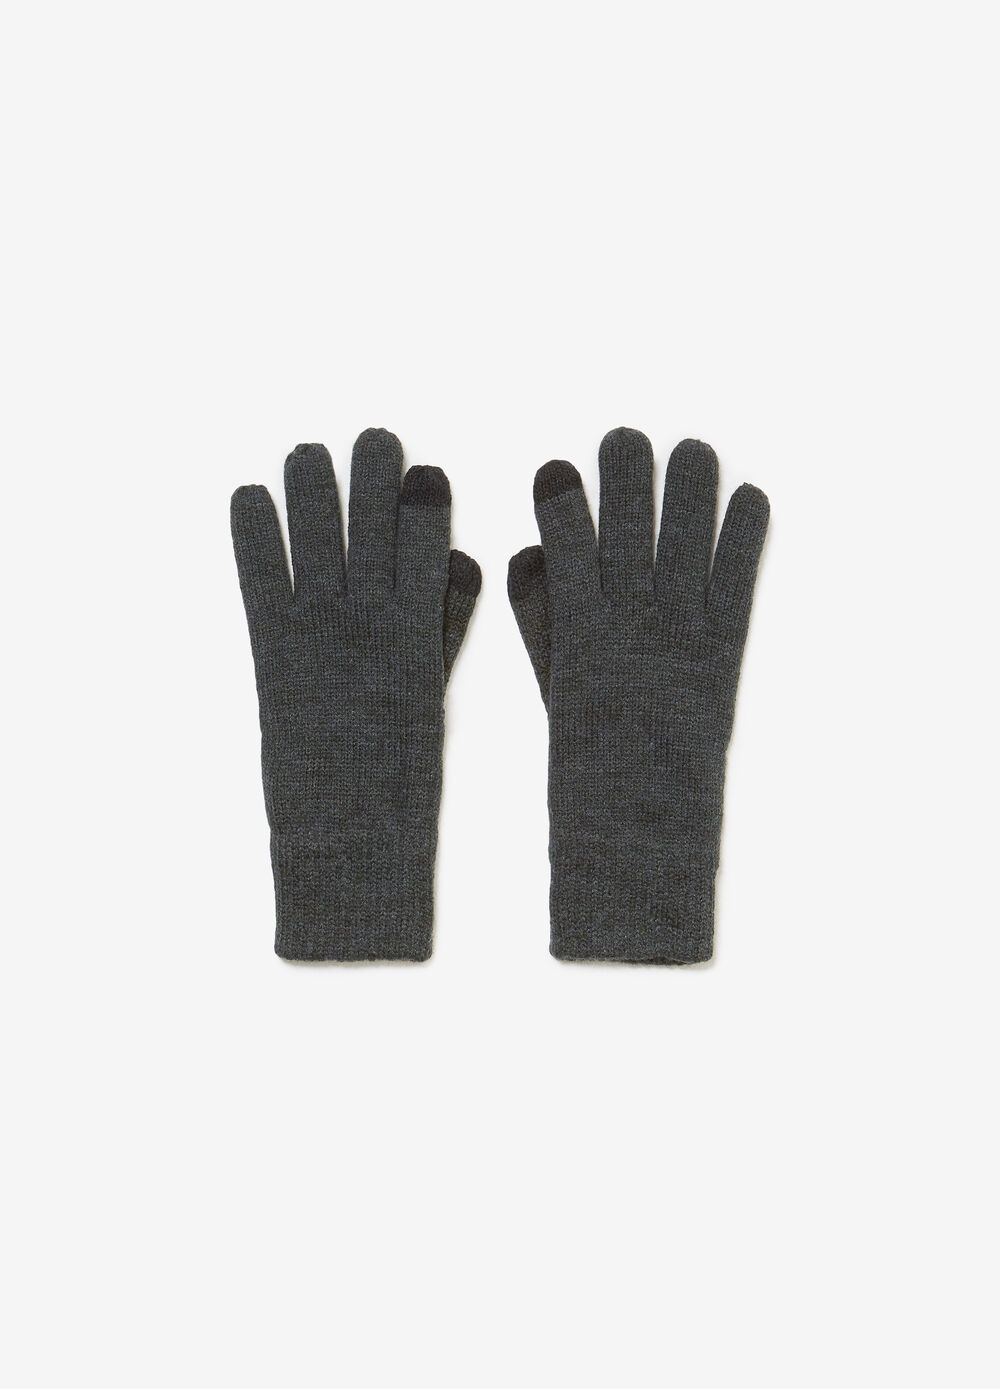 Knit touchscreen gloves with lining